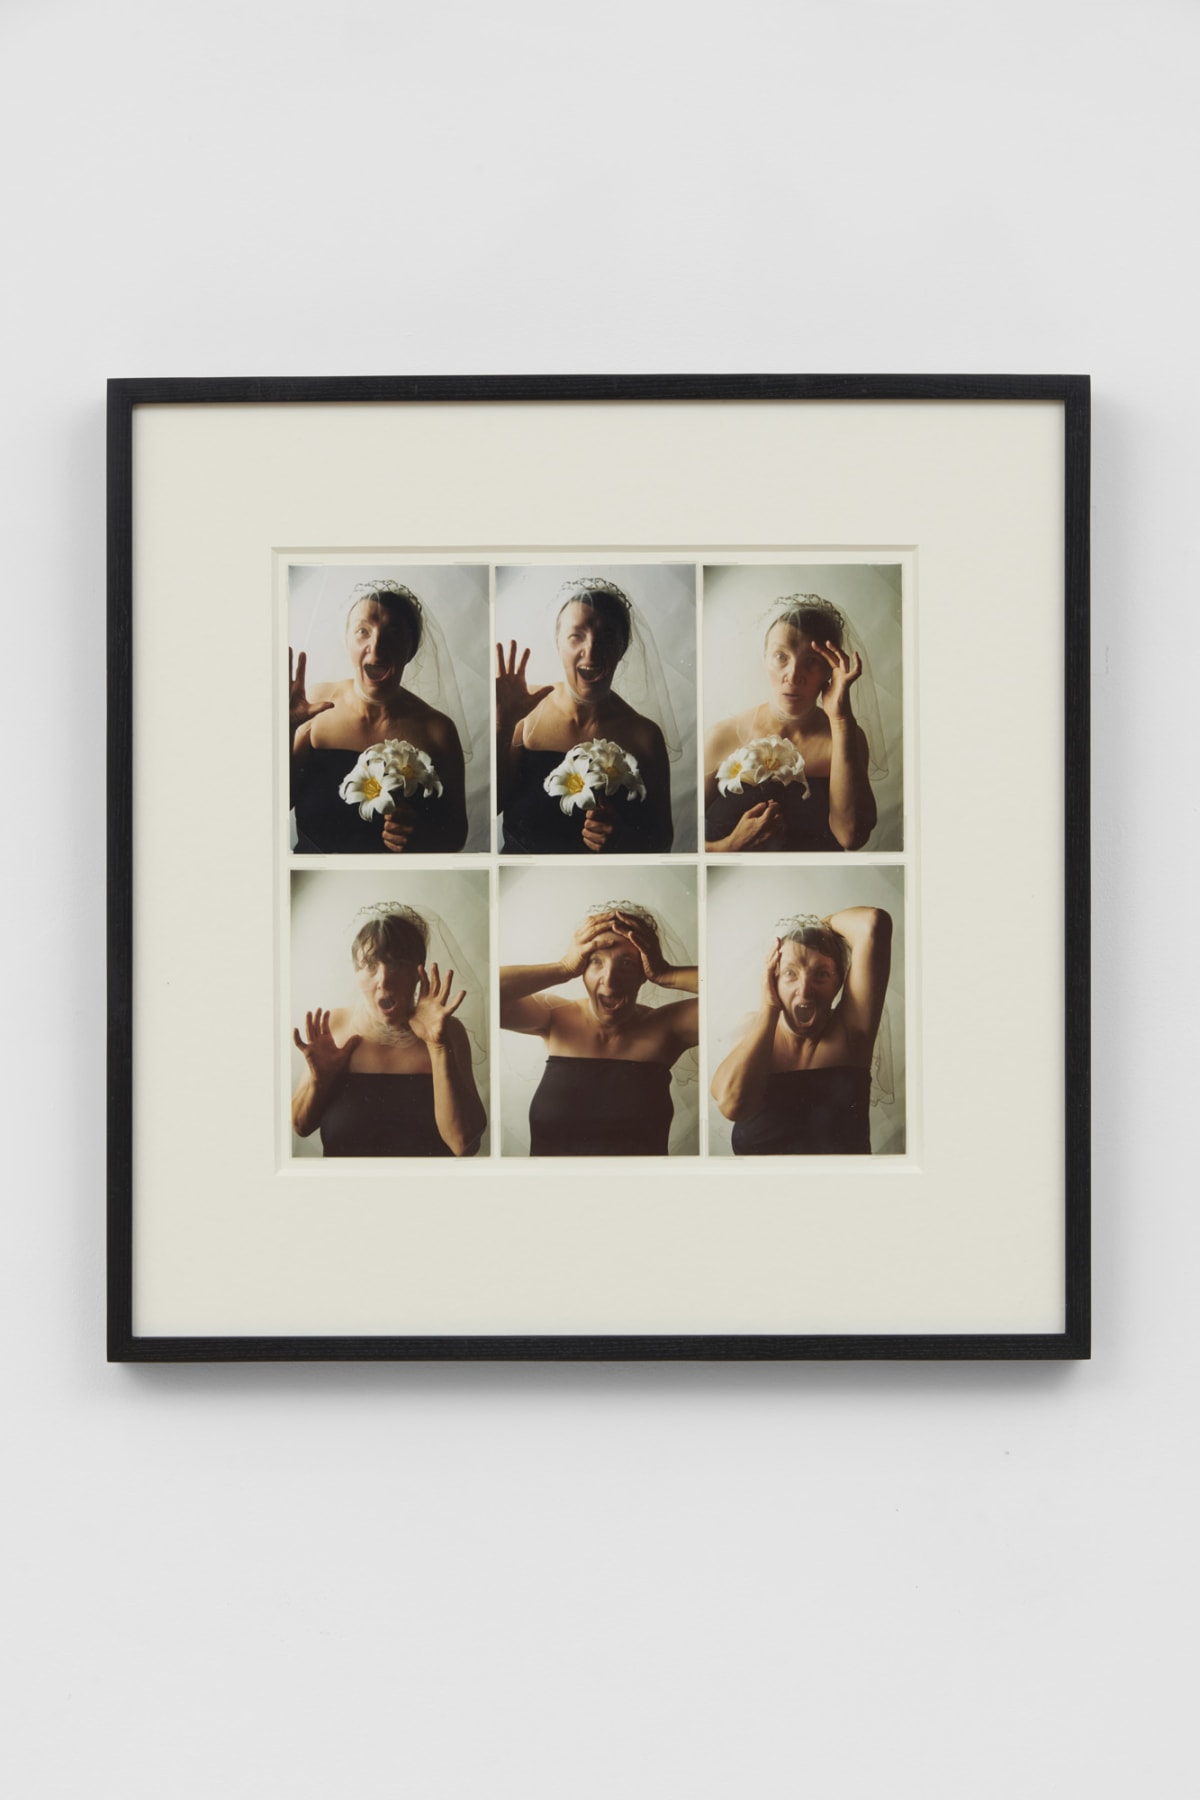 Jo SPENCE Photo Therapy: The Bride, 1984 6 colour photographs mounted on artist's board 14.5 x 10 cm each 30.2 x 31.8 cm board